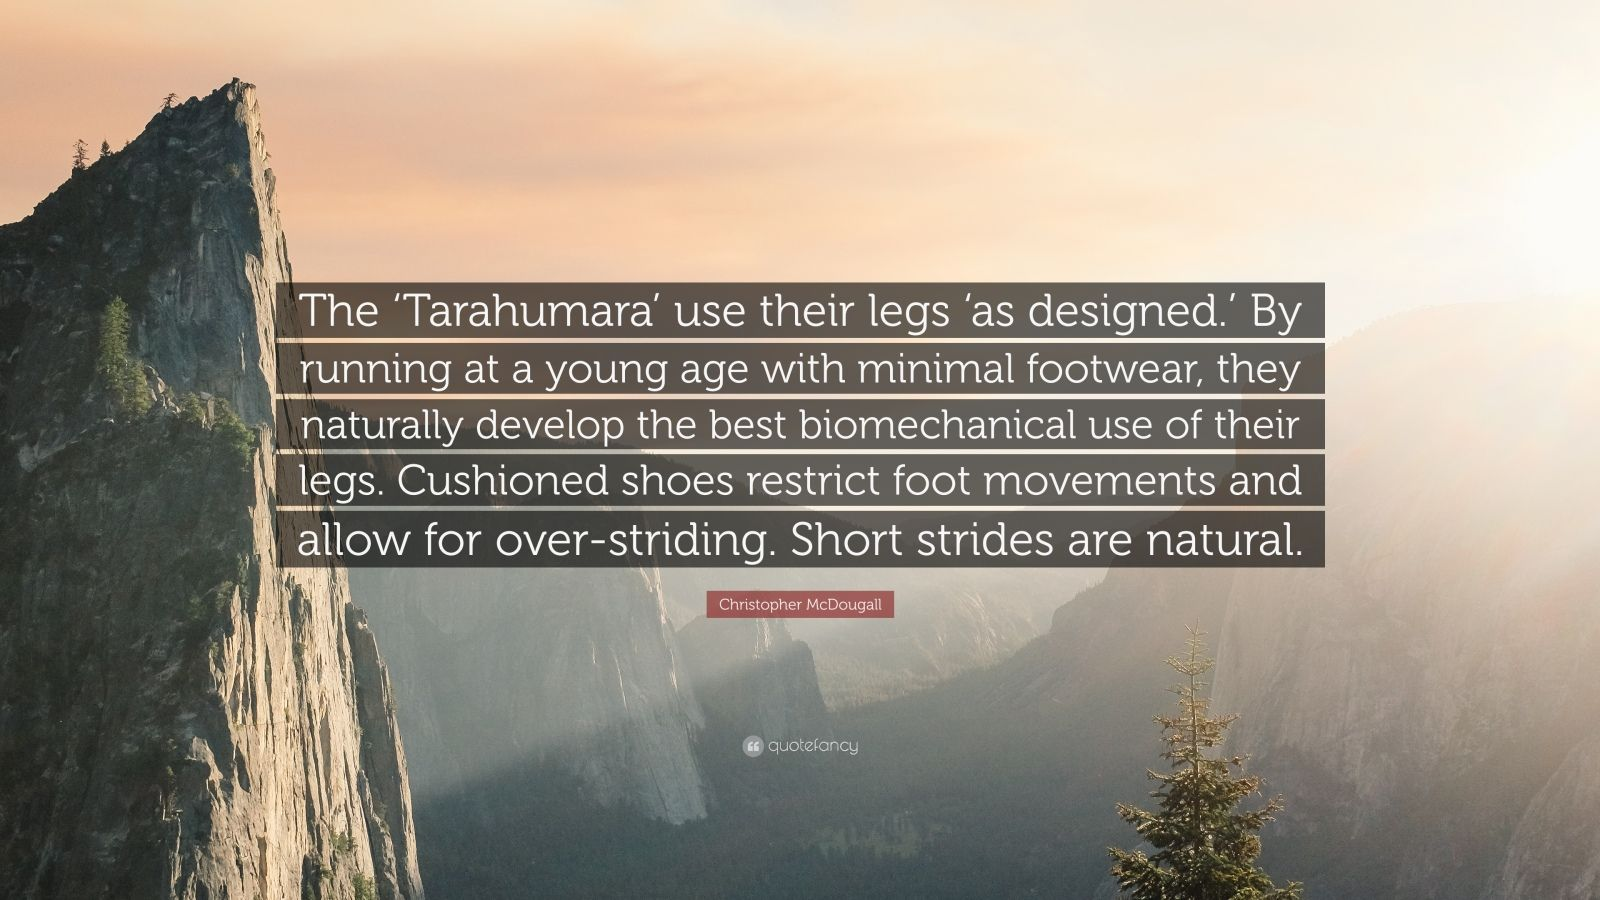 """Christopher McDougall Quote: """"The 'Tarahumara' use their legs 'as designed.' By running at a young age with minimal footwear, they naturally develop the best biomechanical use of their legs. Cushioned shoes restrict foot movements and allow for over-striding. Short strides are natural."""""""